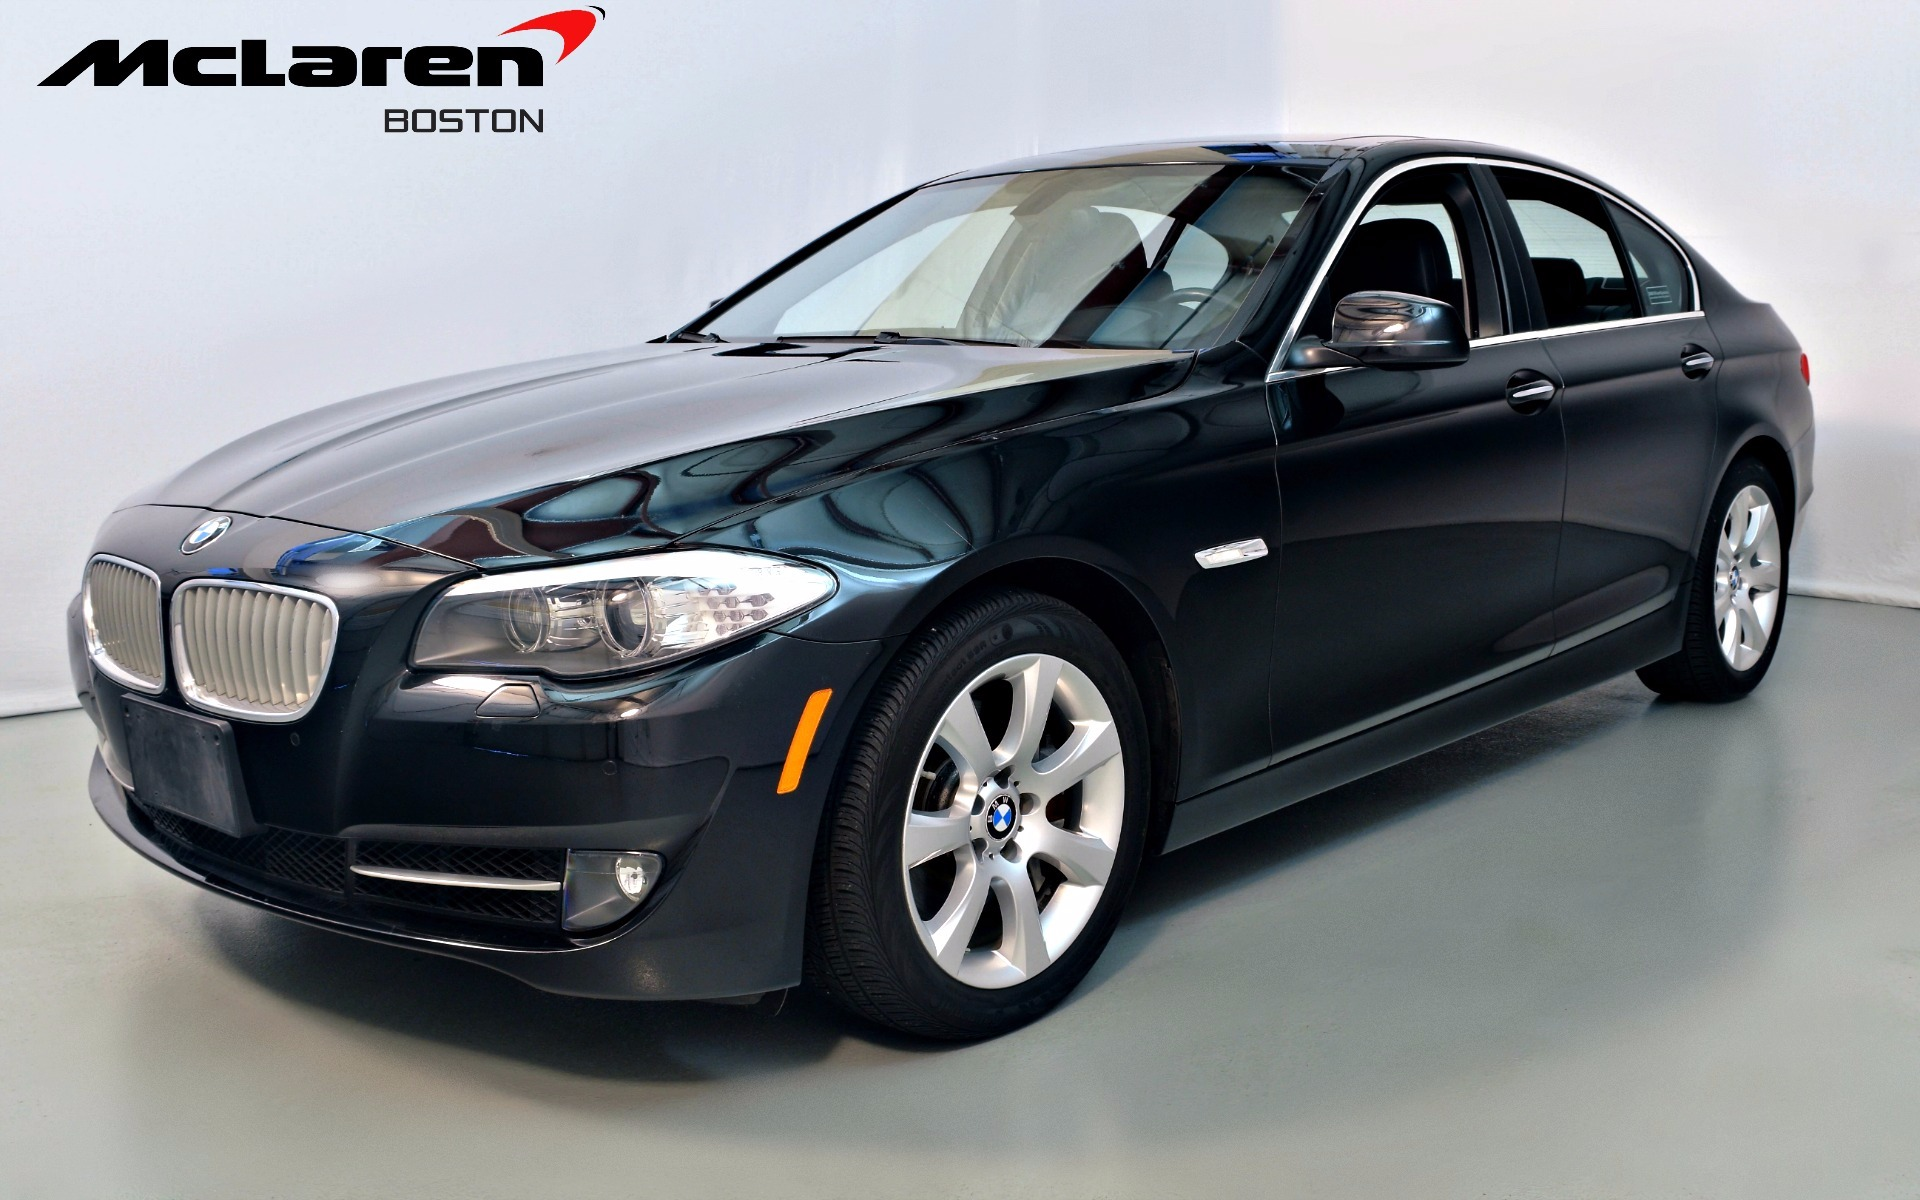 2013 bmw 5 series 550i xdrive for sale in norwell ma y71152 mclaren boston. Black Bedroom Furniture Sets. Home Design Ideas